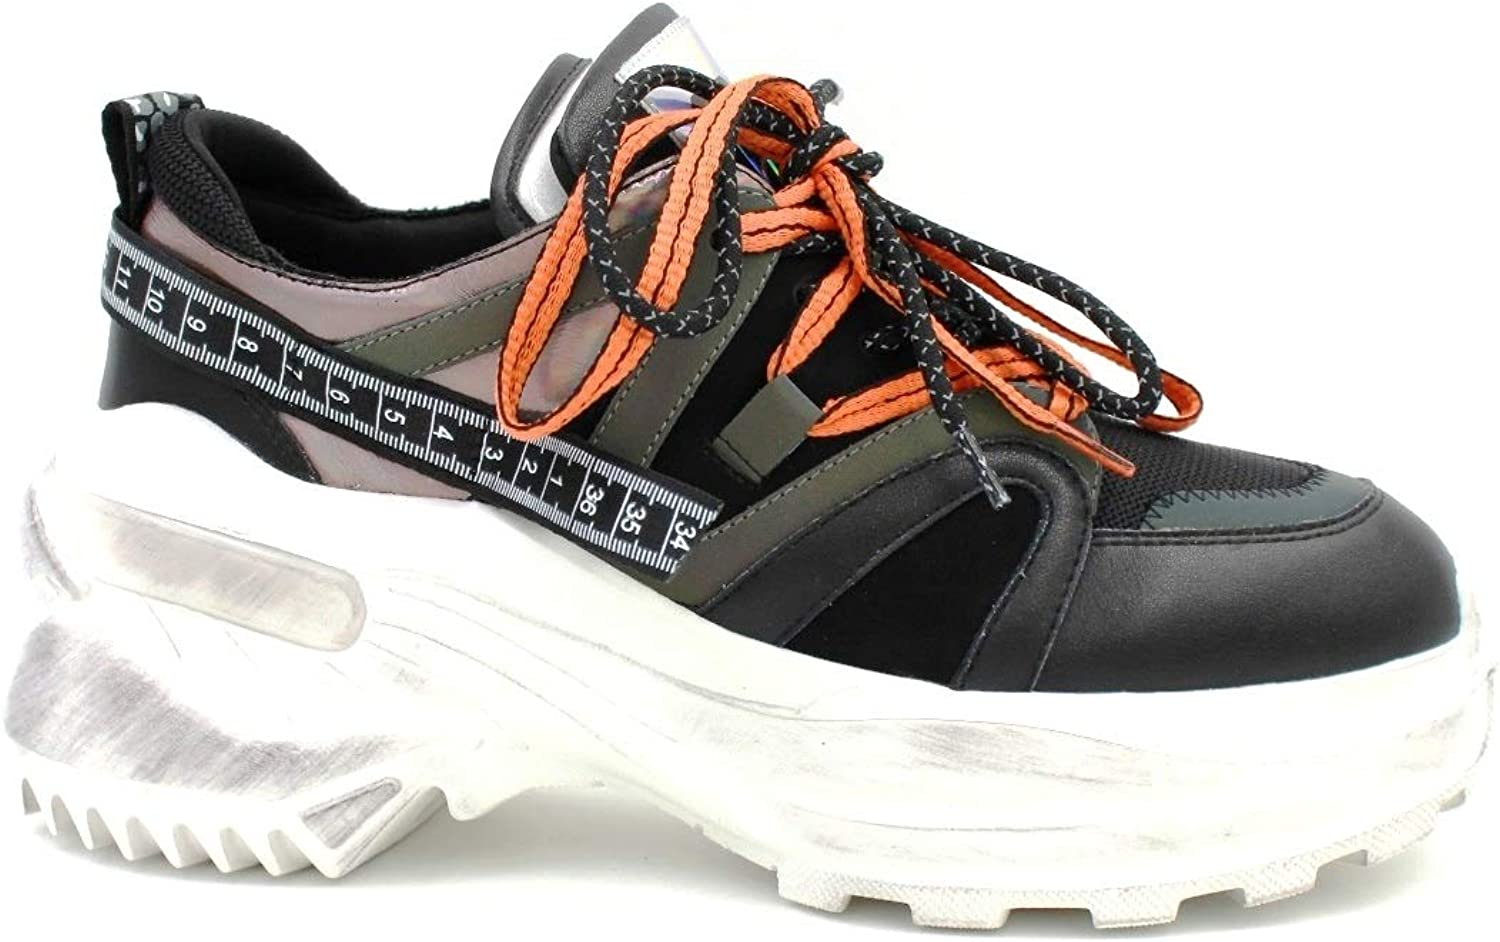 Women's Jacksonville Mall Fashion Comfortable Stylish Cash special price Sole Sneakers with White